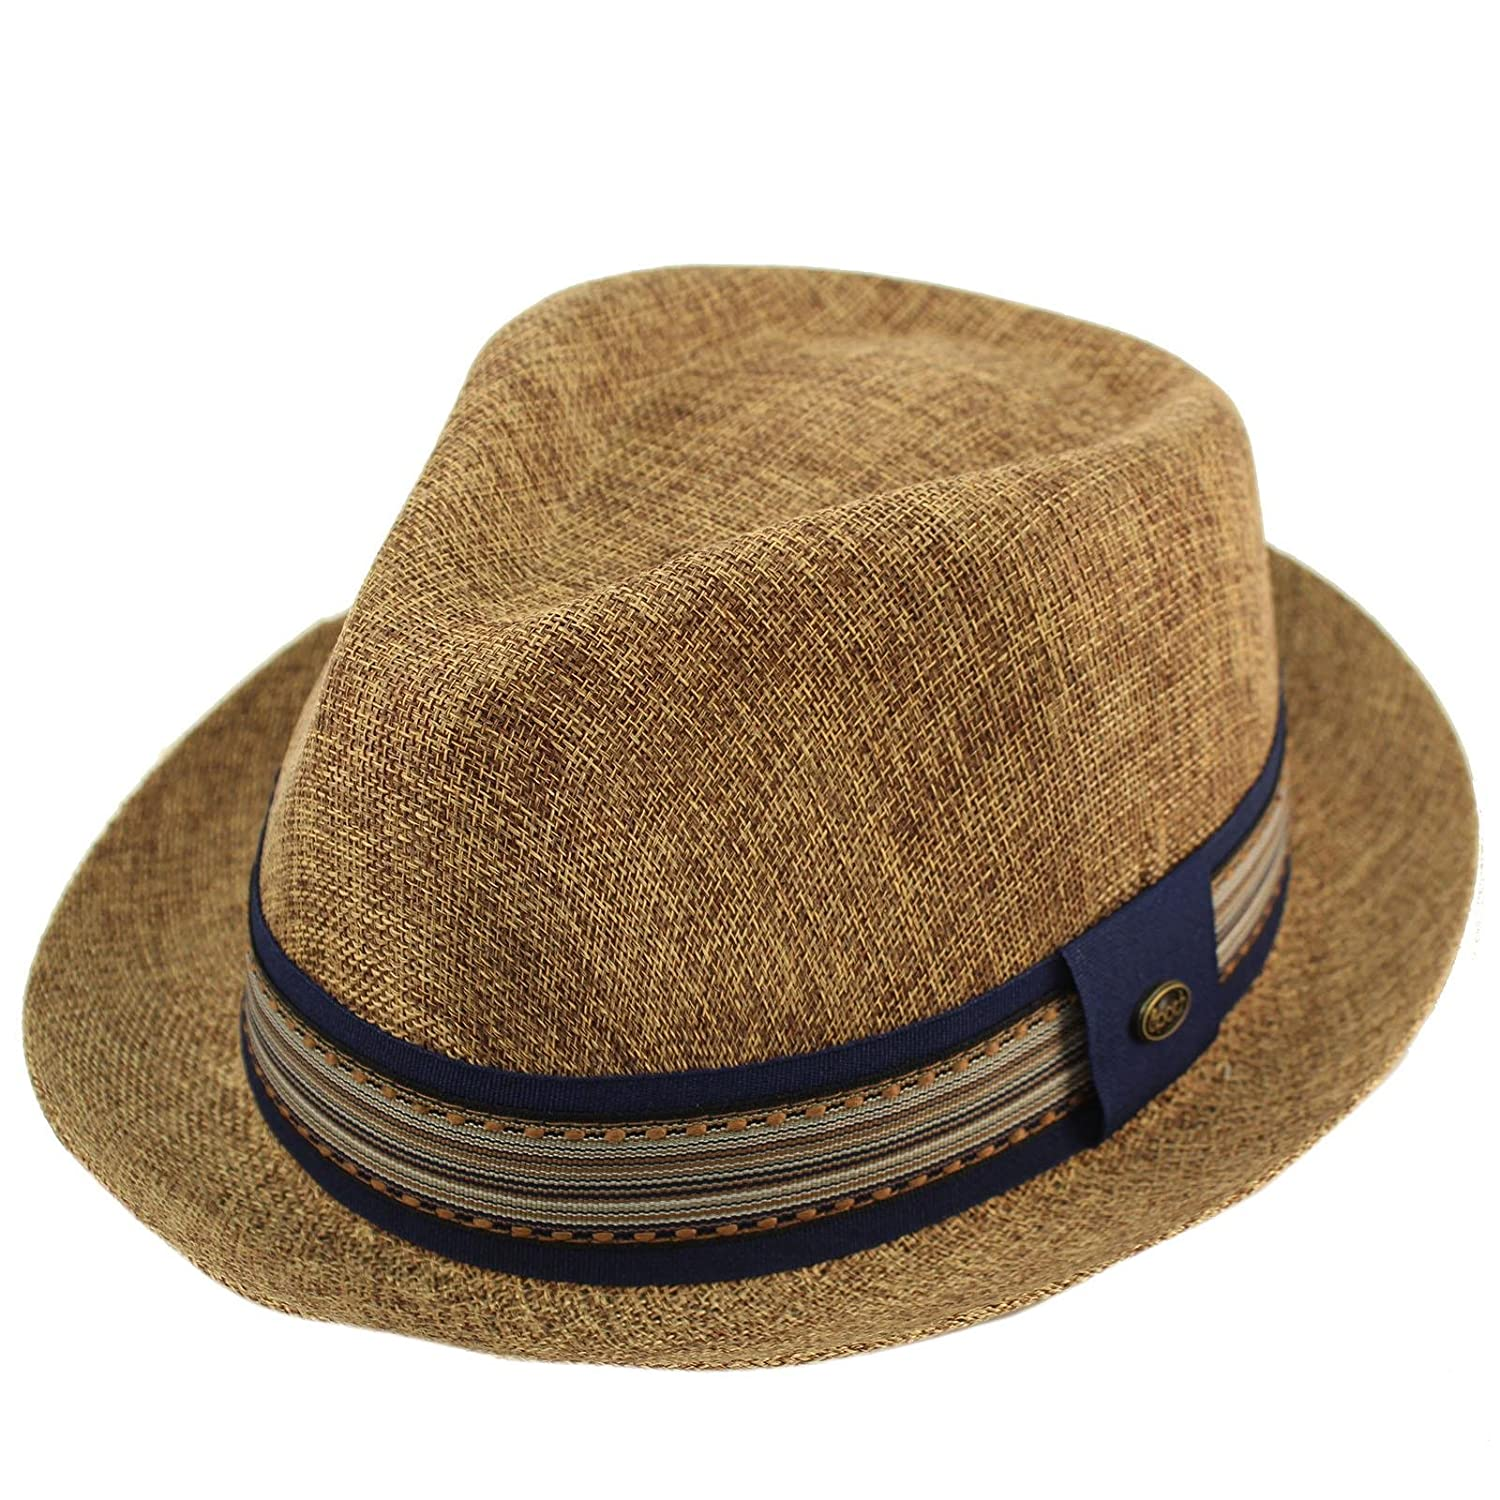 3a8c4ca7427 Epoch Men s Primo Summer Lightweight Linen Derby Fedora Upturn Brim Hat at  Amazon Men s Clothing store